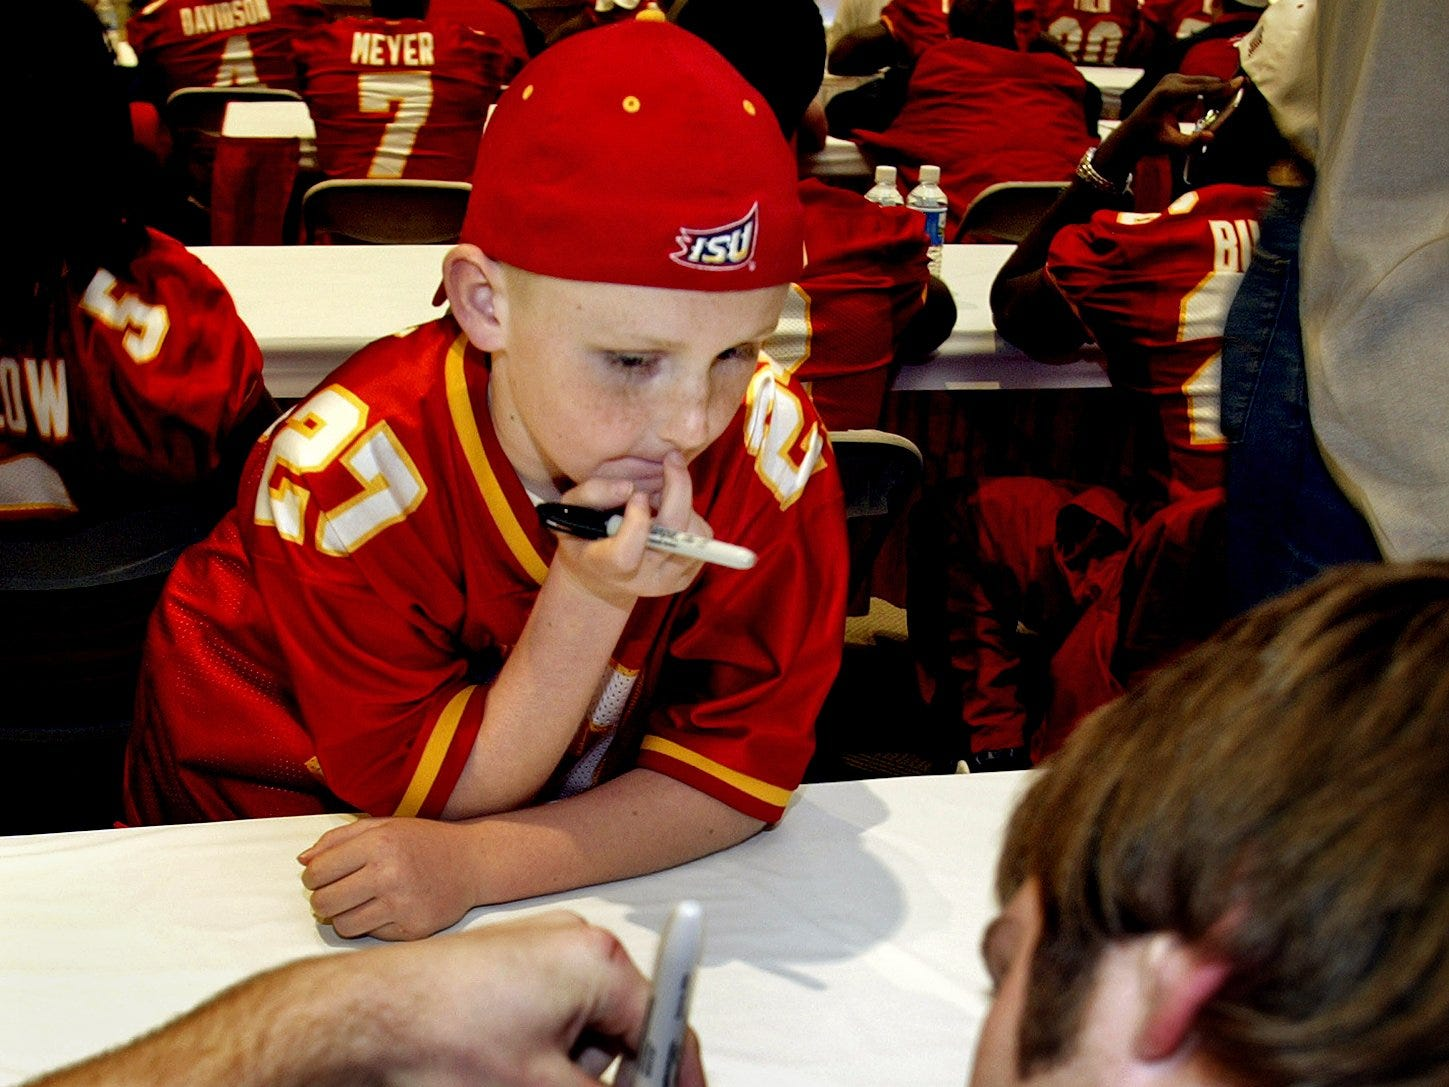 You're from where? Chad Cotton Whitehead of Austin, Texas, 9-year-old nephew of Iowa State coach Barney Cotton, has his football autographed by Iowa State's Nick Frere before the 2004 Independence Bowl.